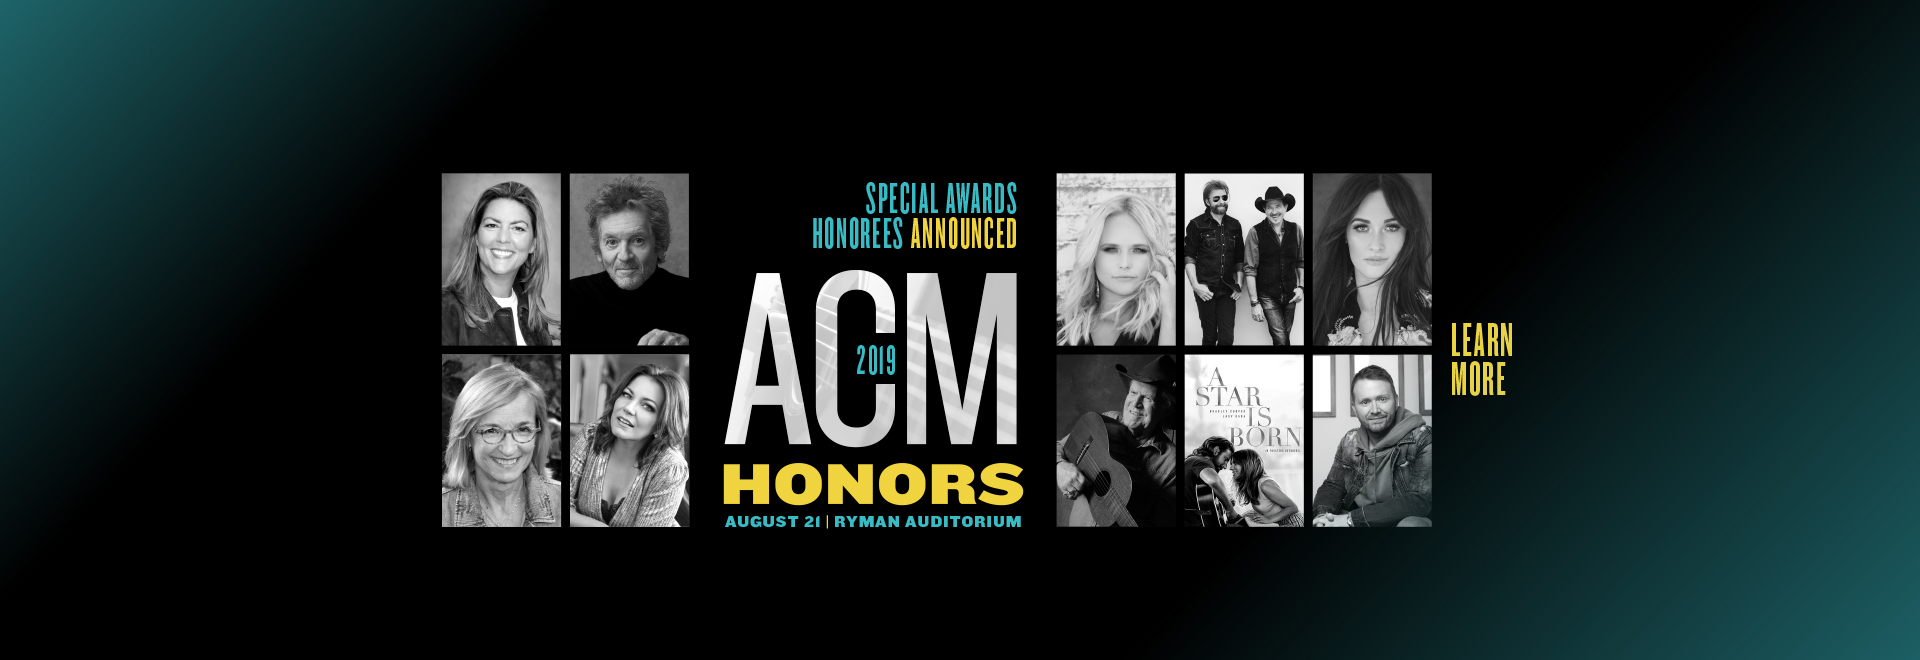 acm_Honors19_SpecAwards_Announce_Rotator_LL_1920x660.jpg